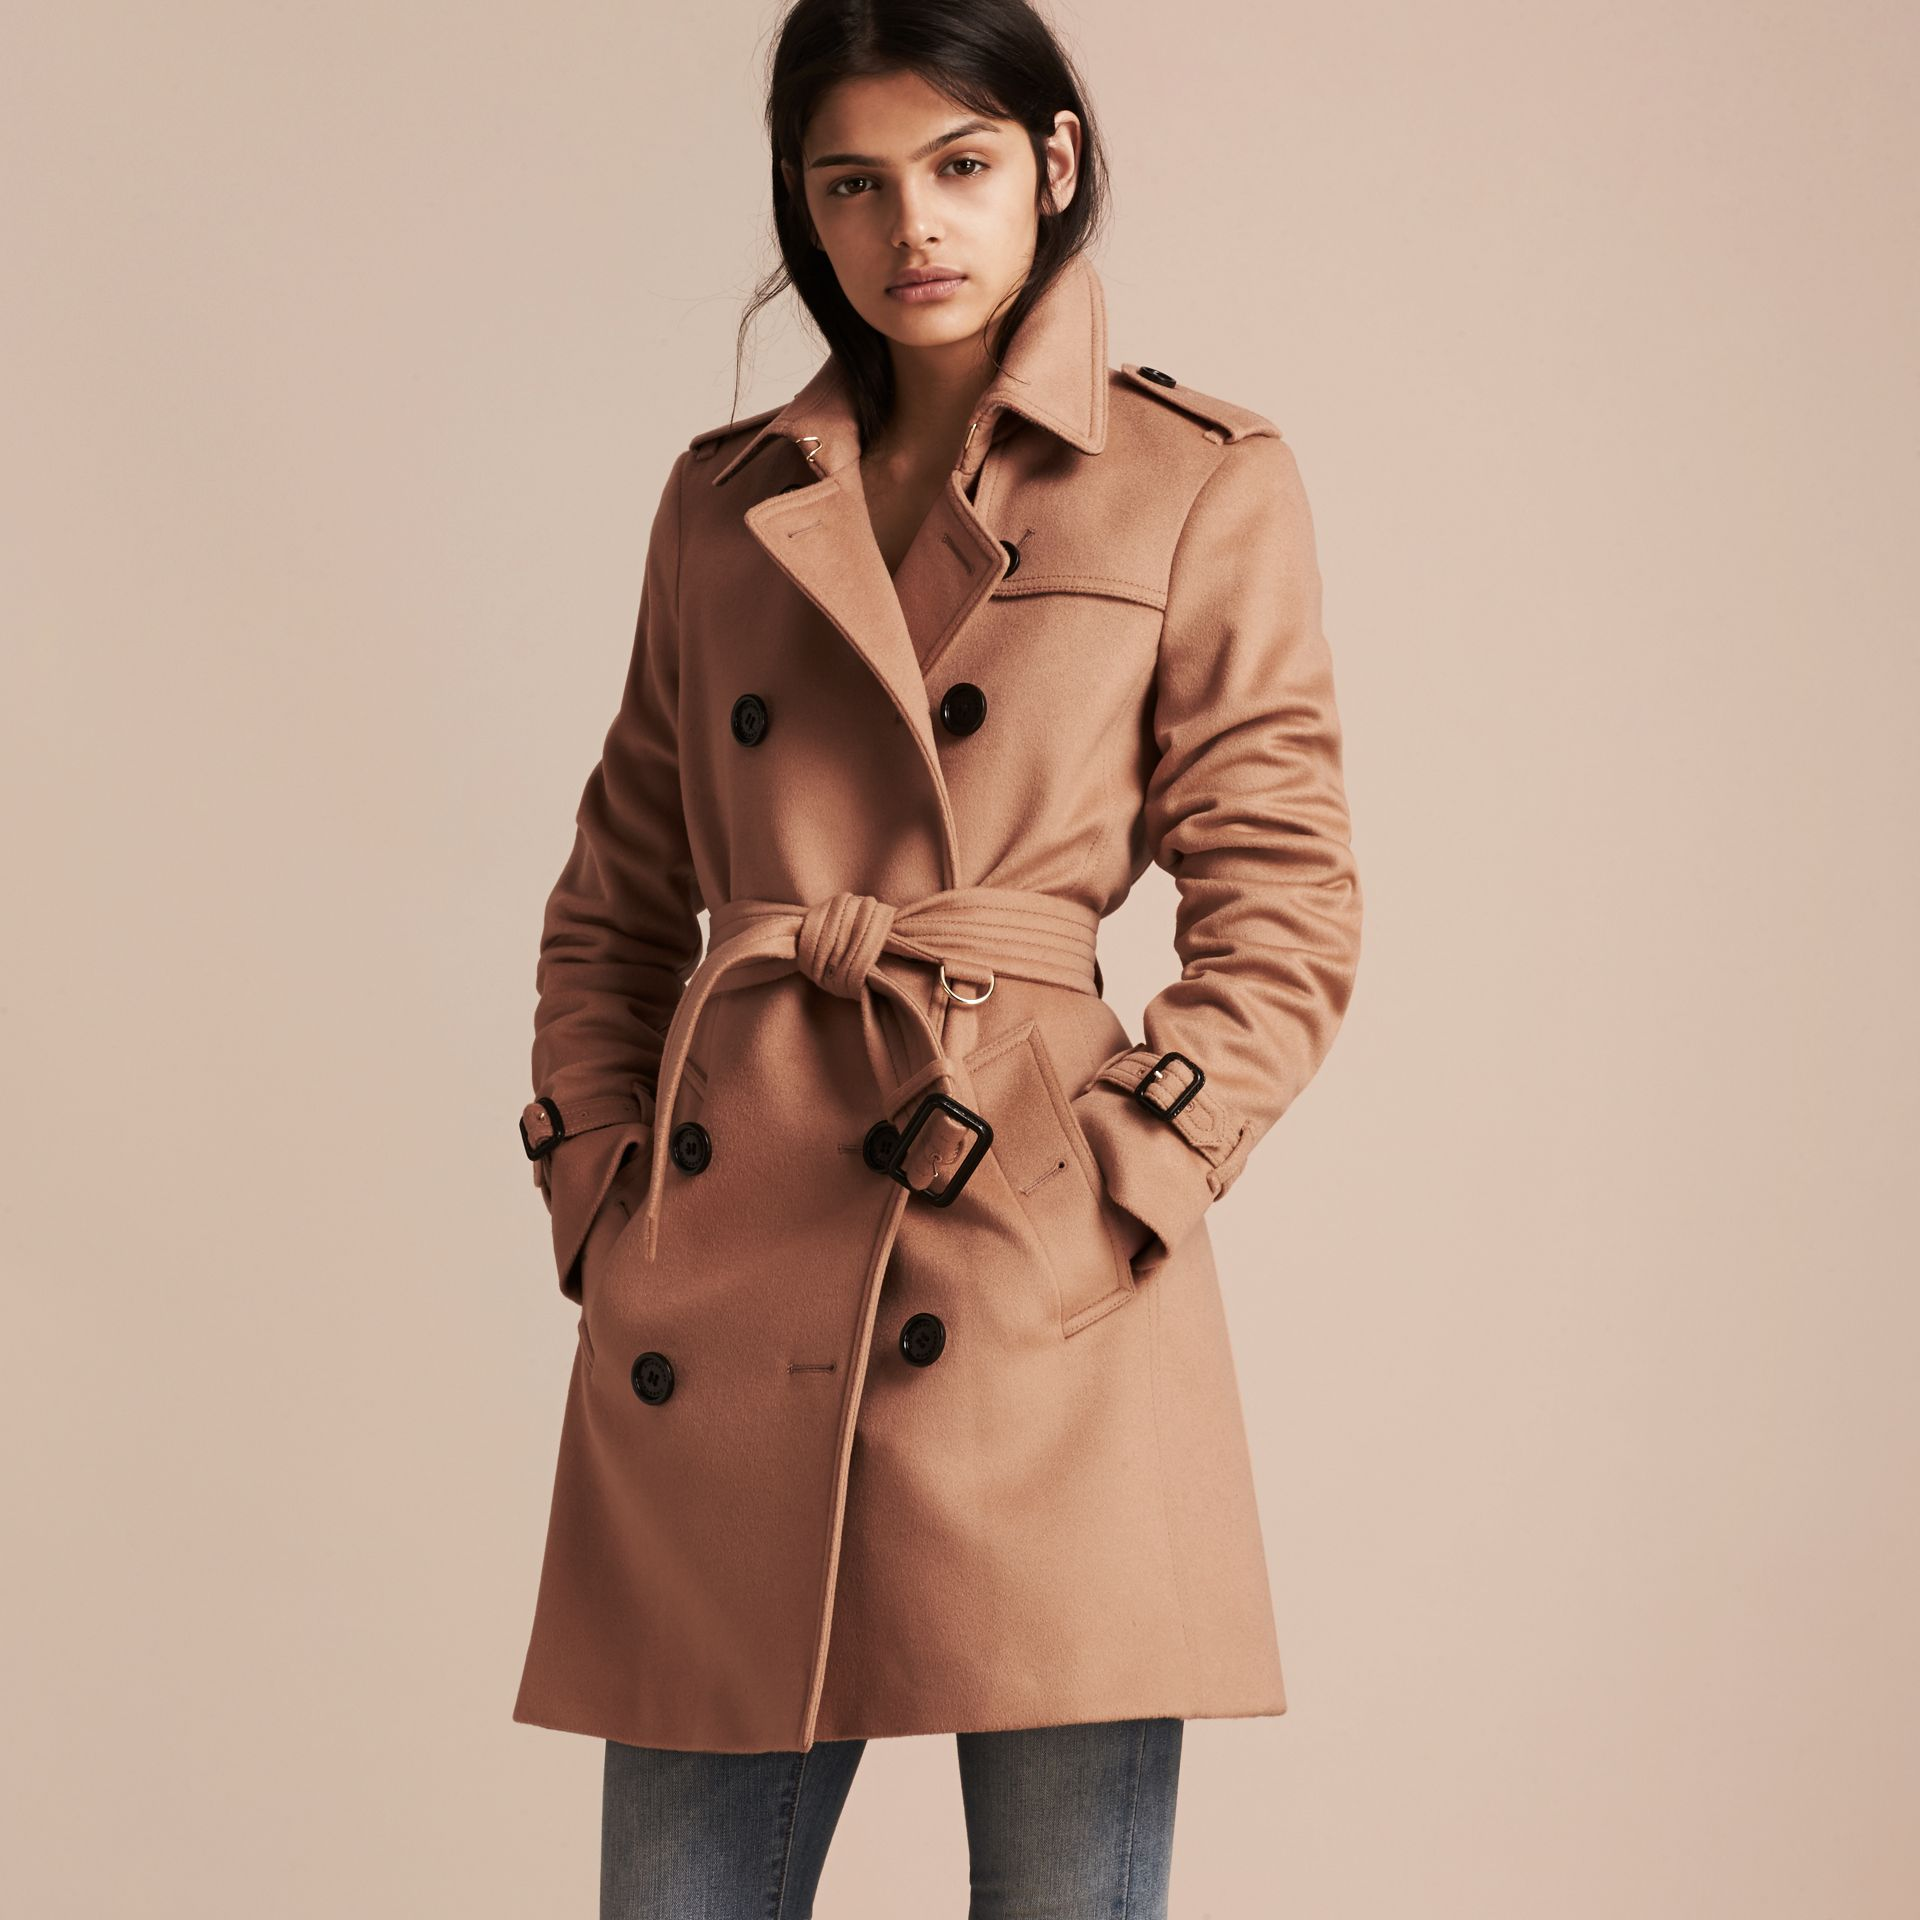 Wool Cashmere Trench Coat in Camel - Women | Burberry - gallery image 1